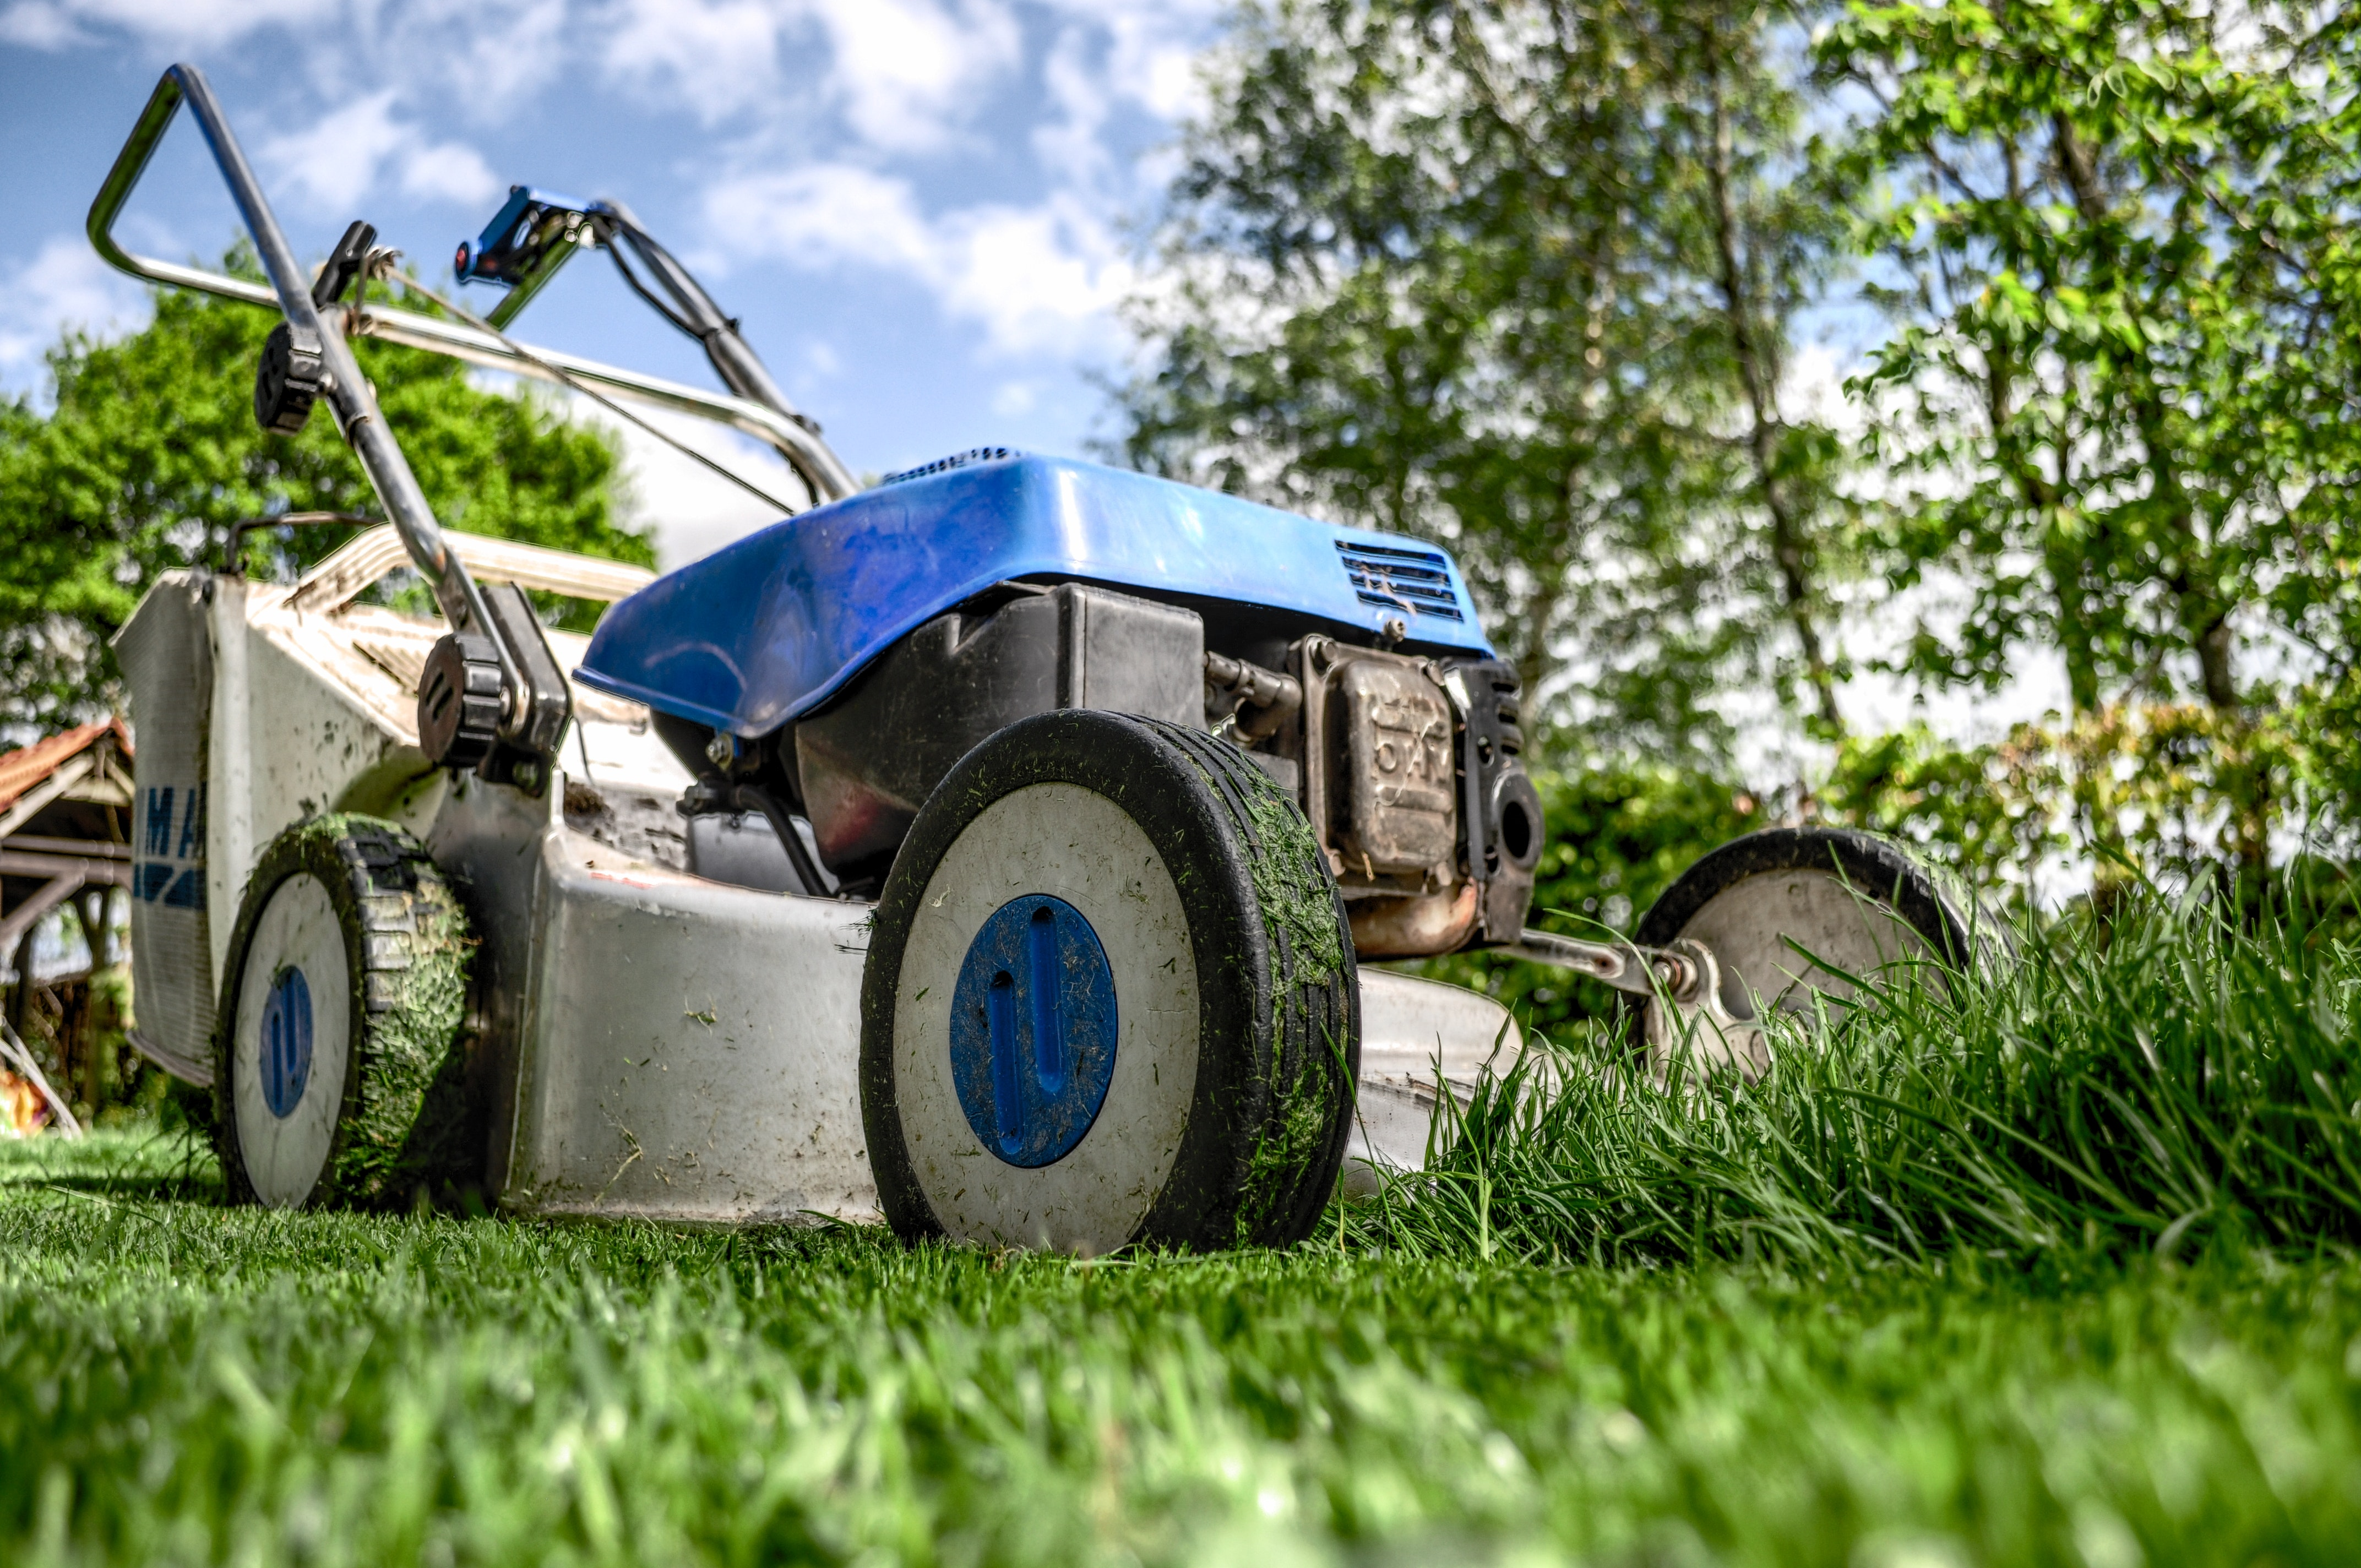 Photo of a lawnmower cutting grass